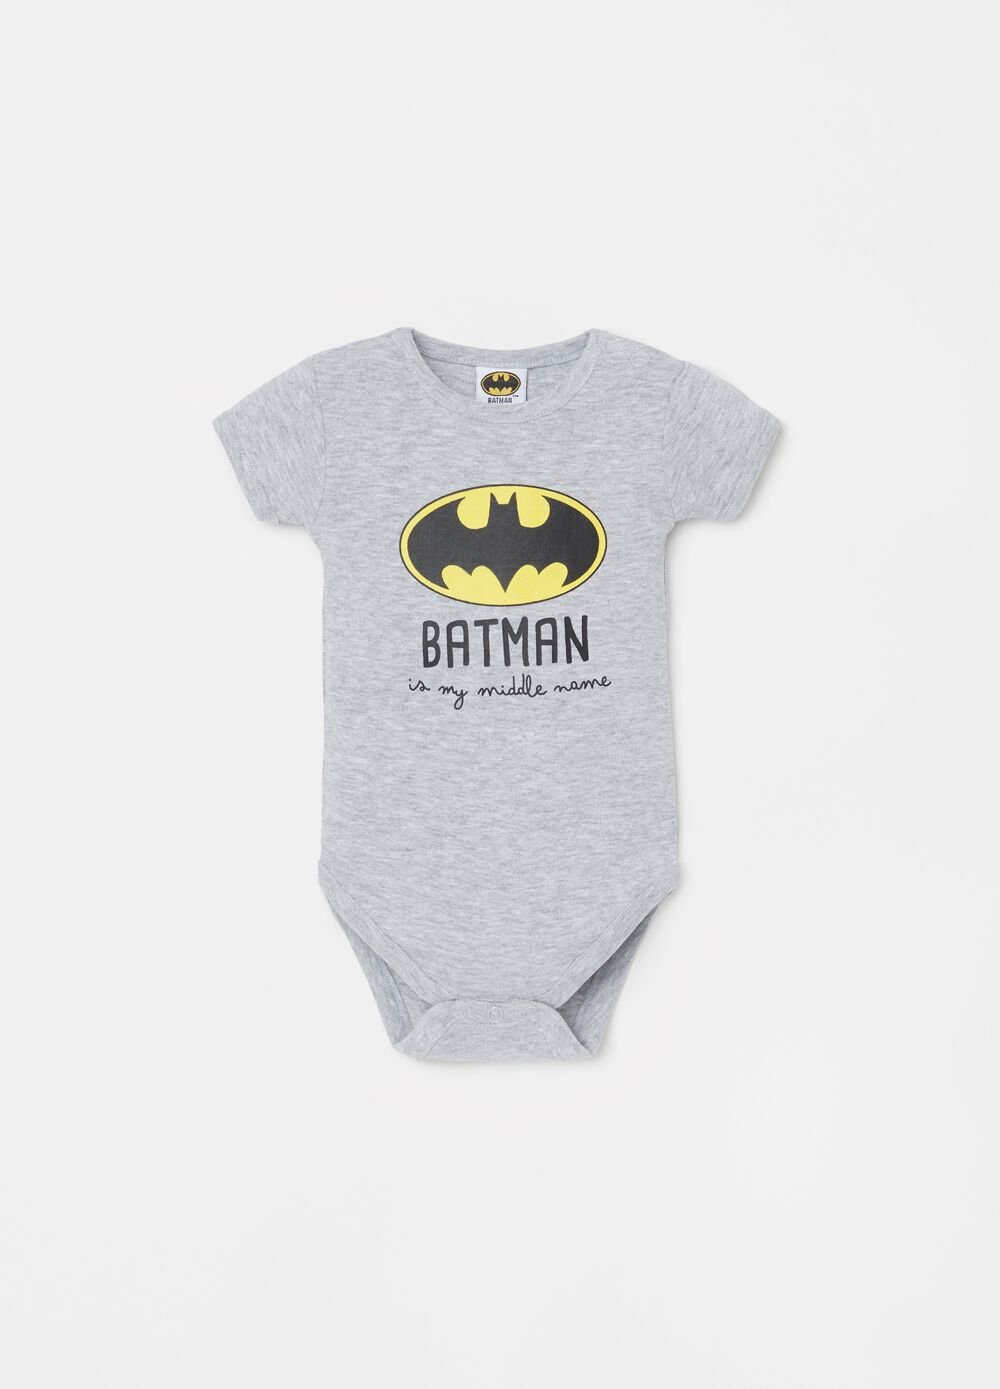 100% organic cotton bodysuit with Batman print